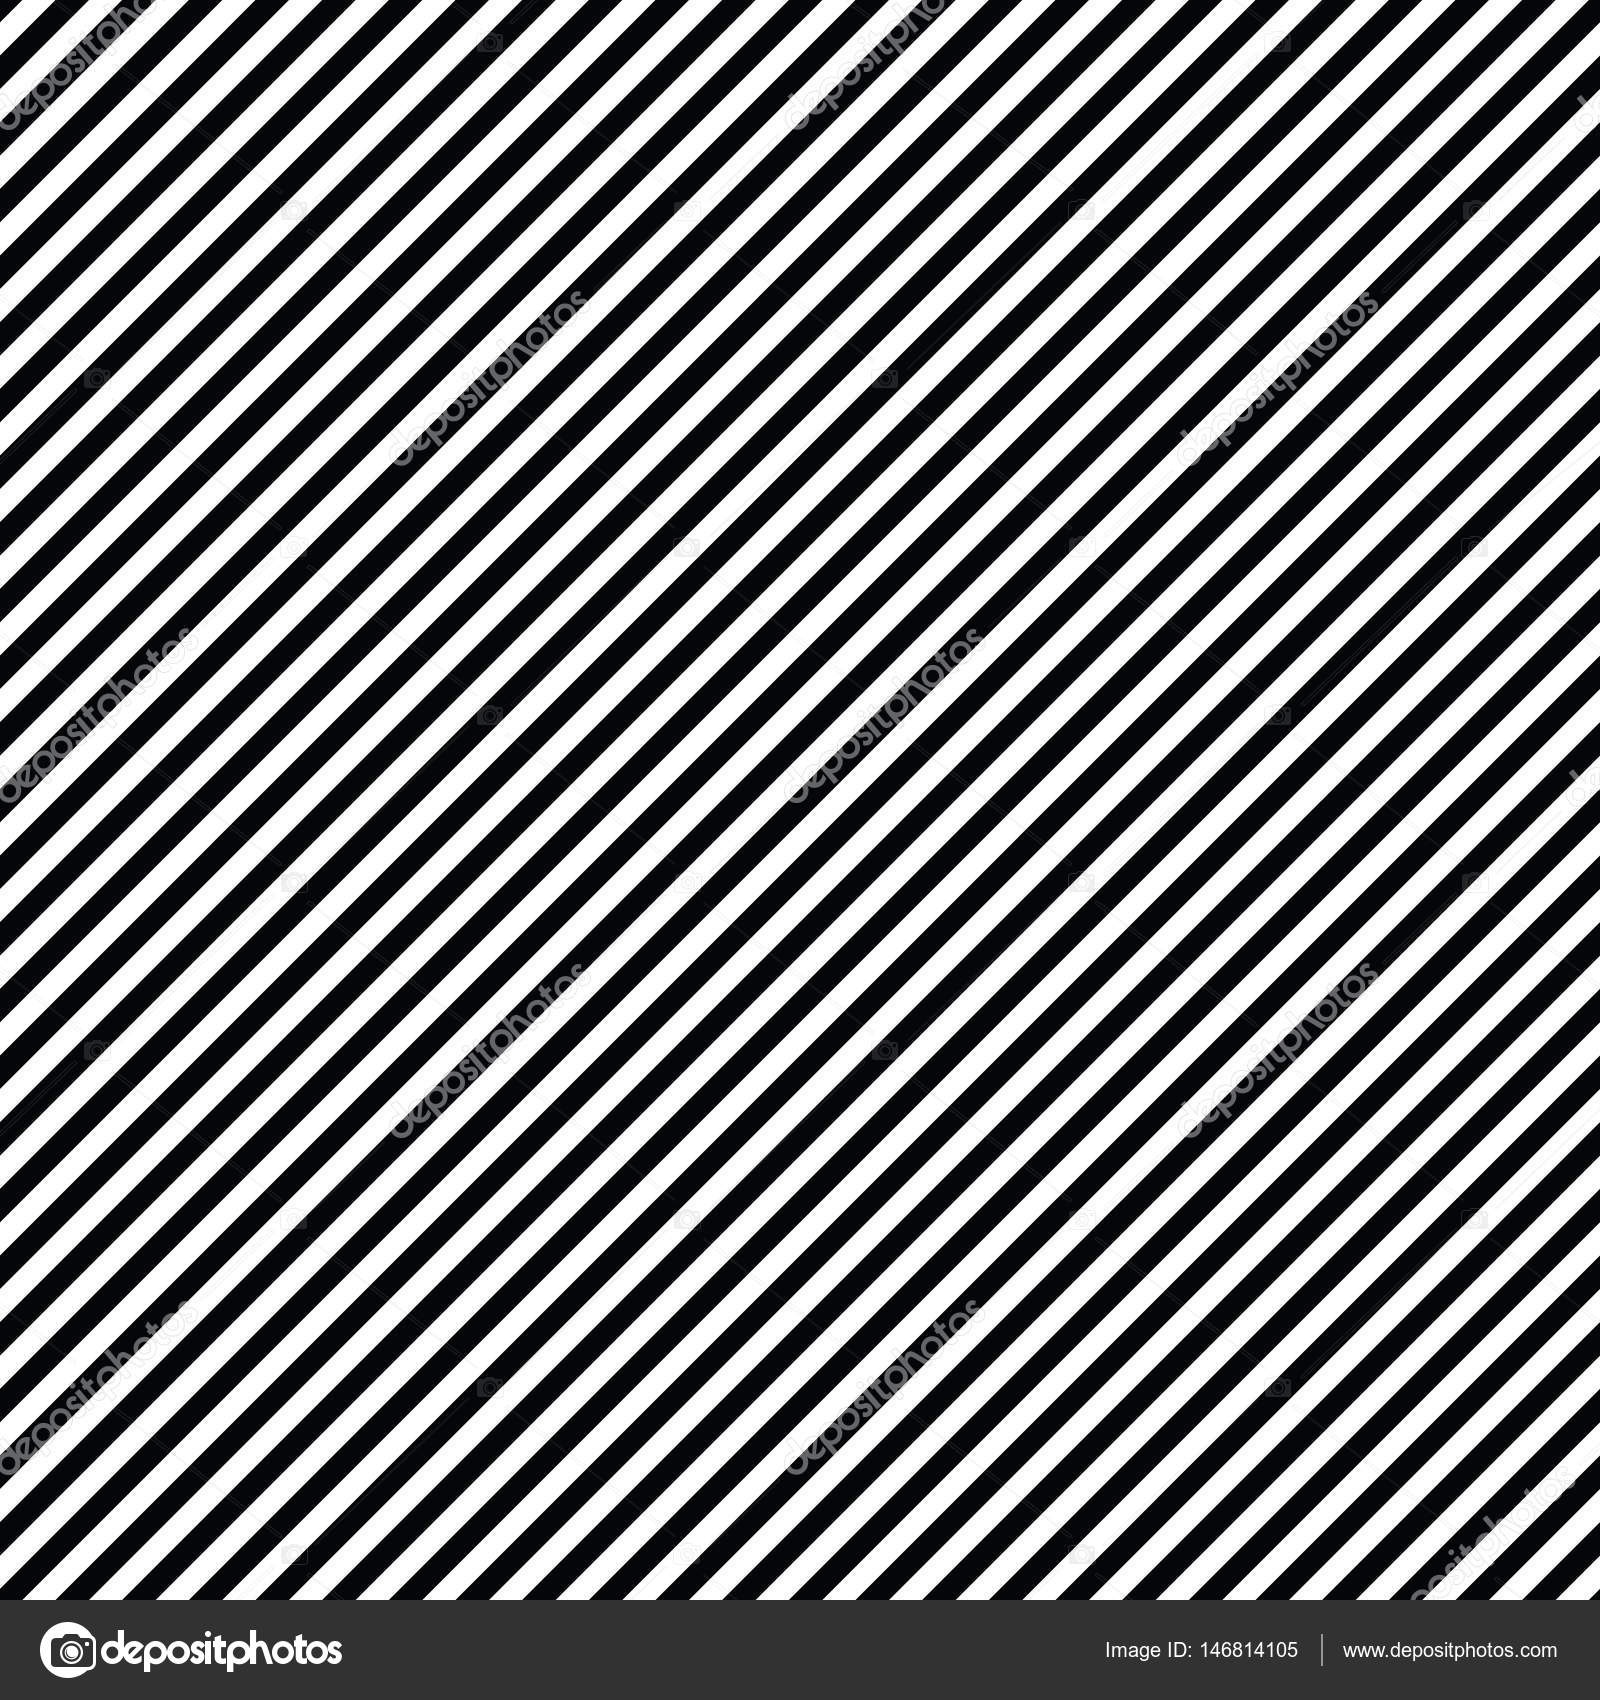 Line Texture Seamless : Black and white diagonal lines — stock vector pashabo